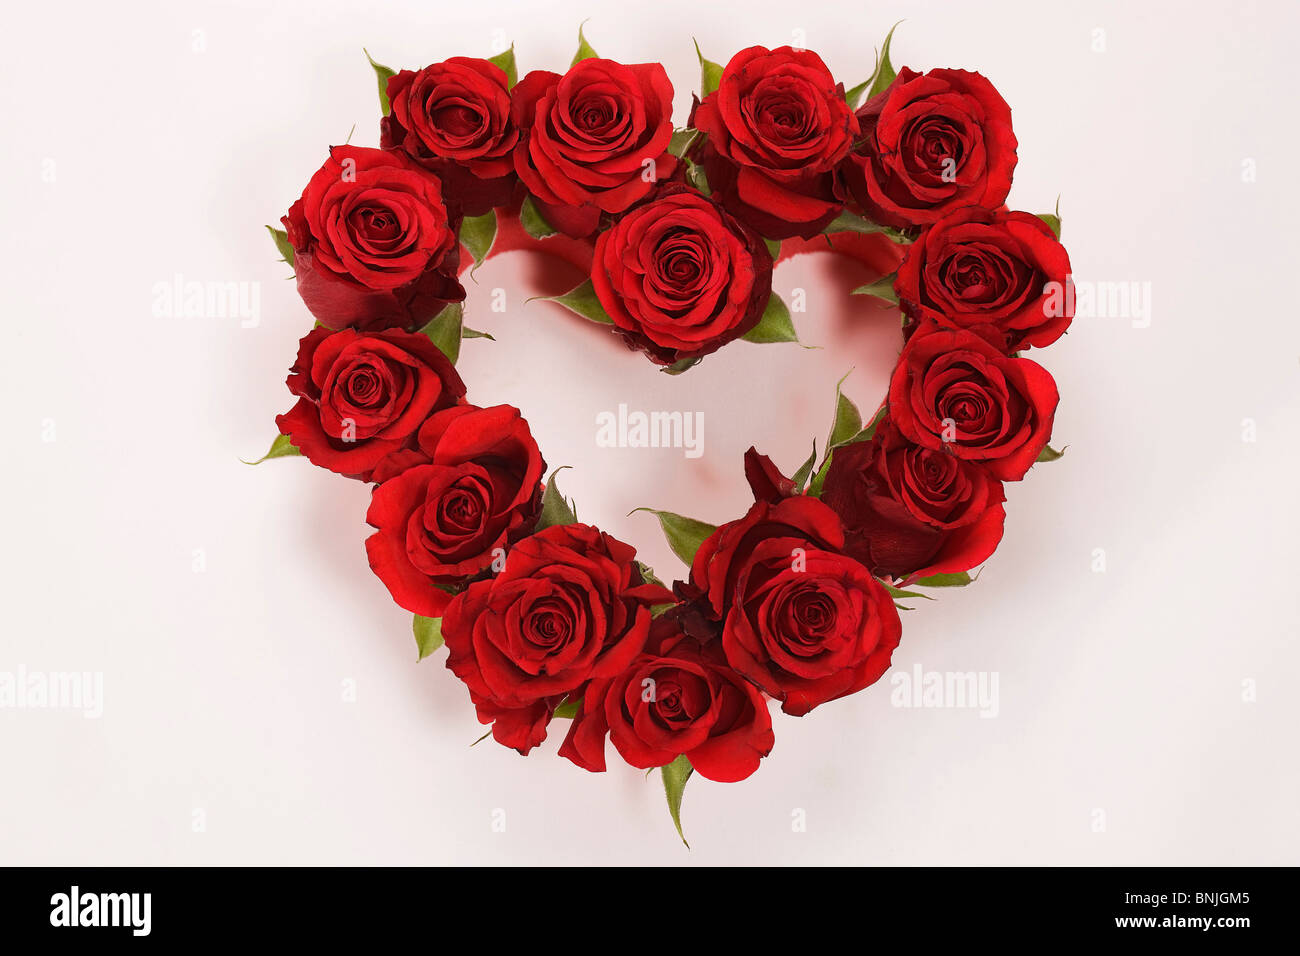 Genre Flower Flowers Gift Heart In Love Love Loving Red Rose Rose